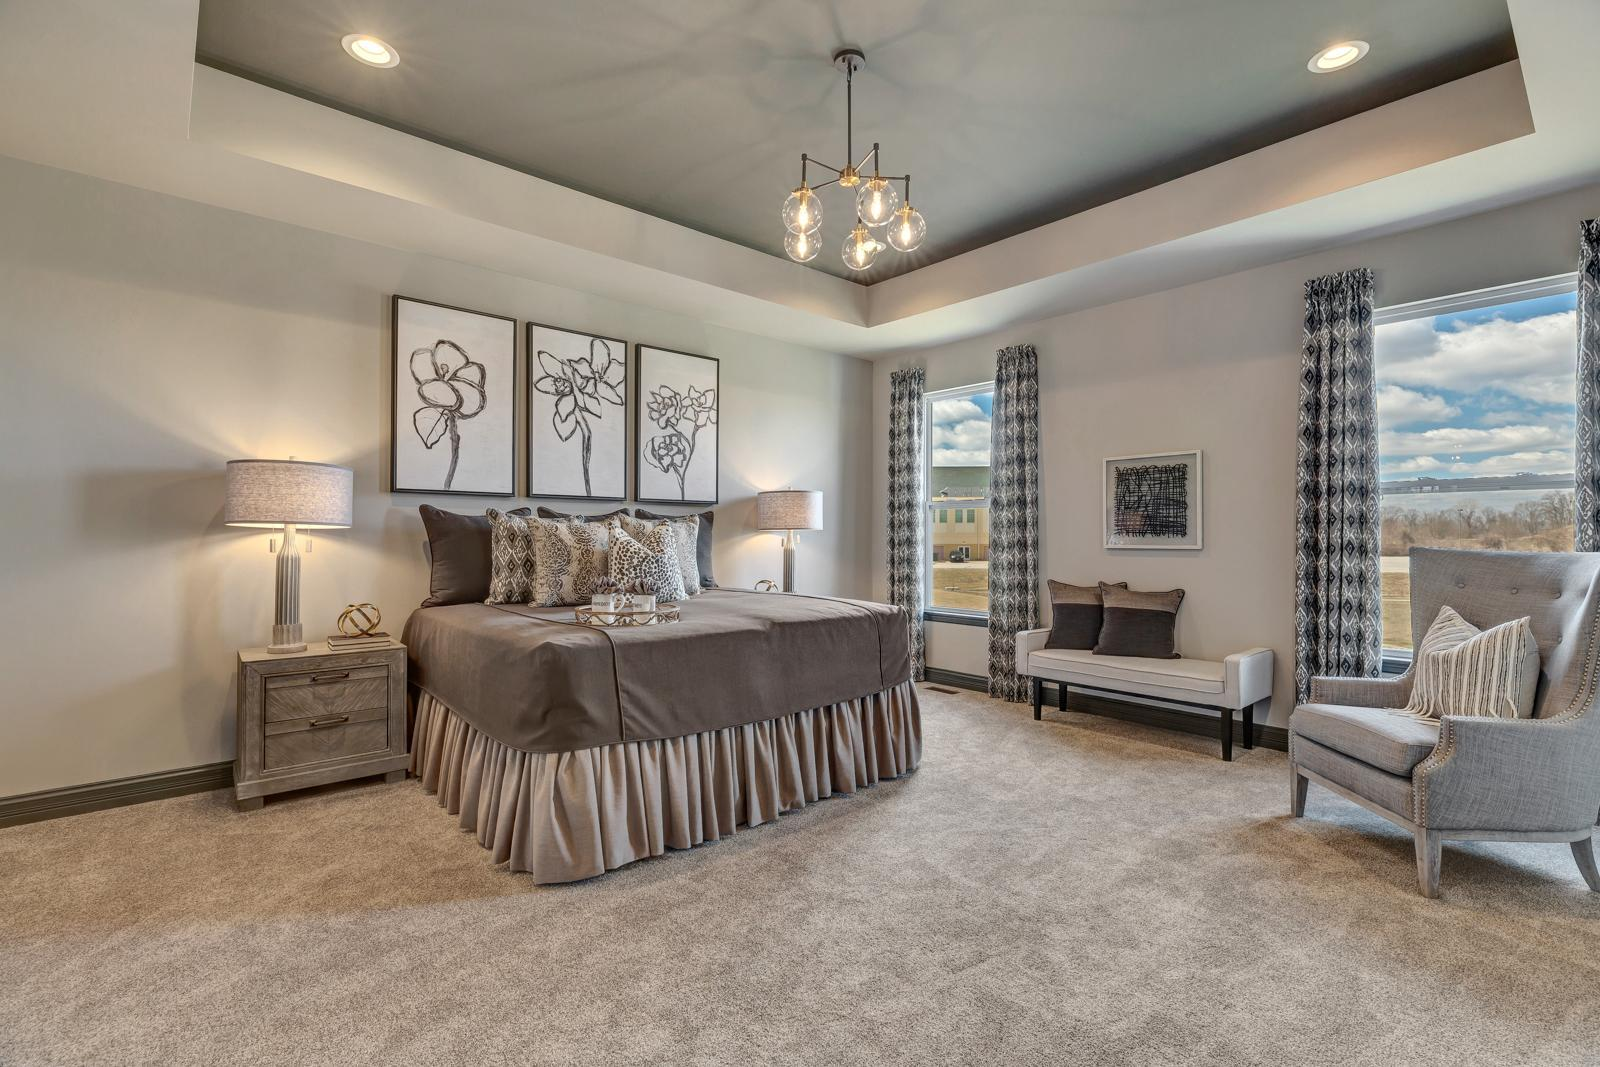 Bedroom featured in the Turnberry Side Entry By McKelvey Homes in St. Louis, MO